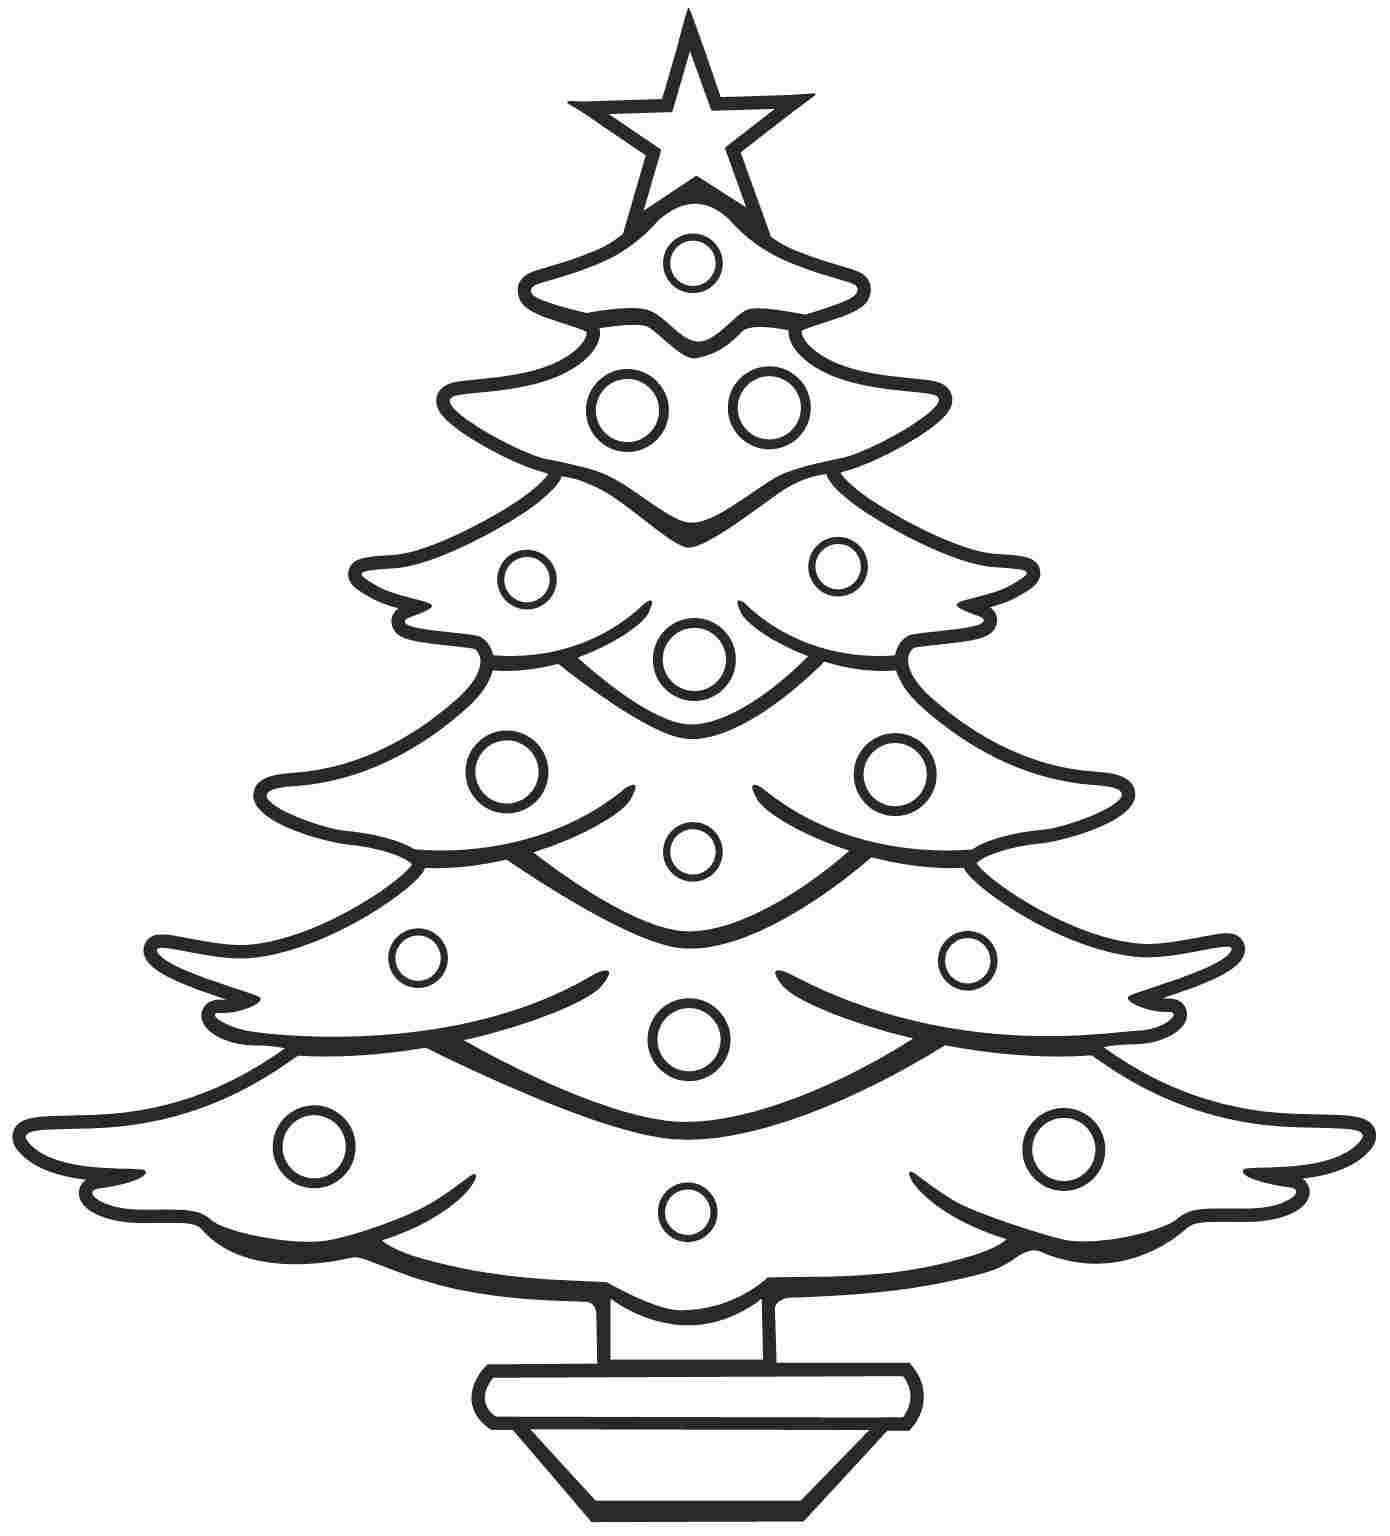 Simple Christmas Tree Drawing at GetDrawings